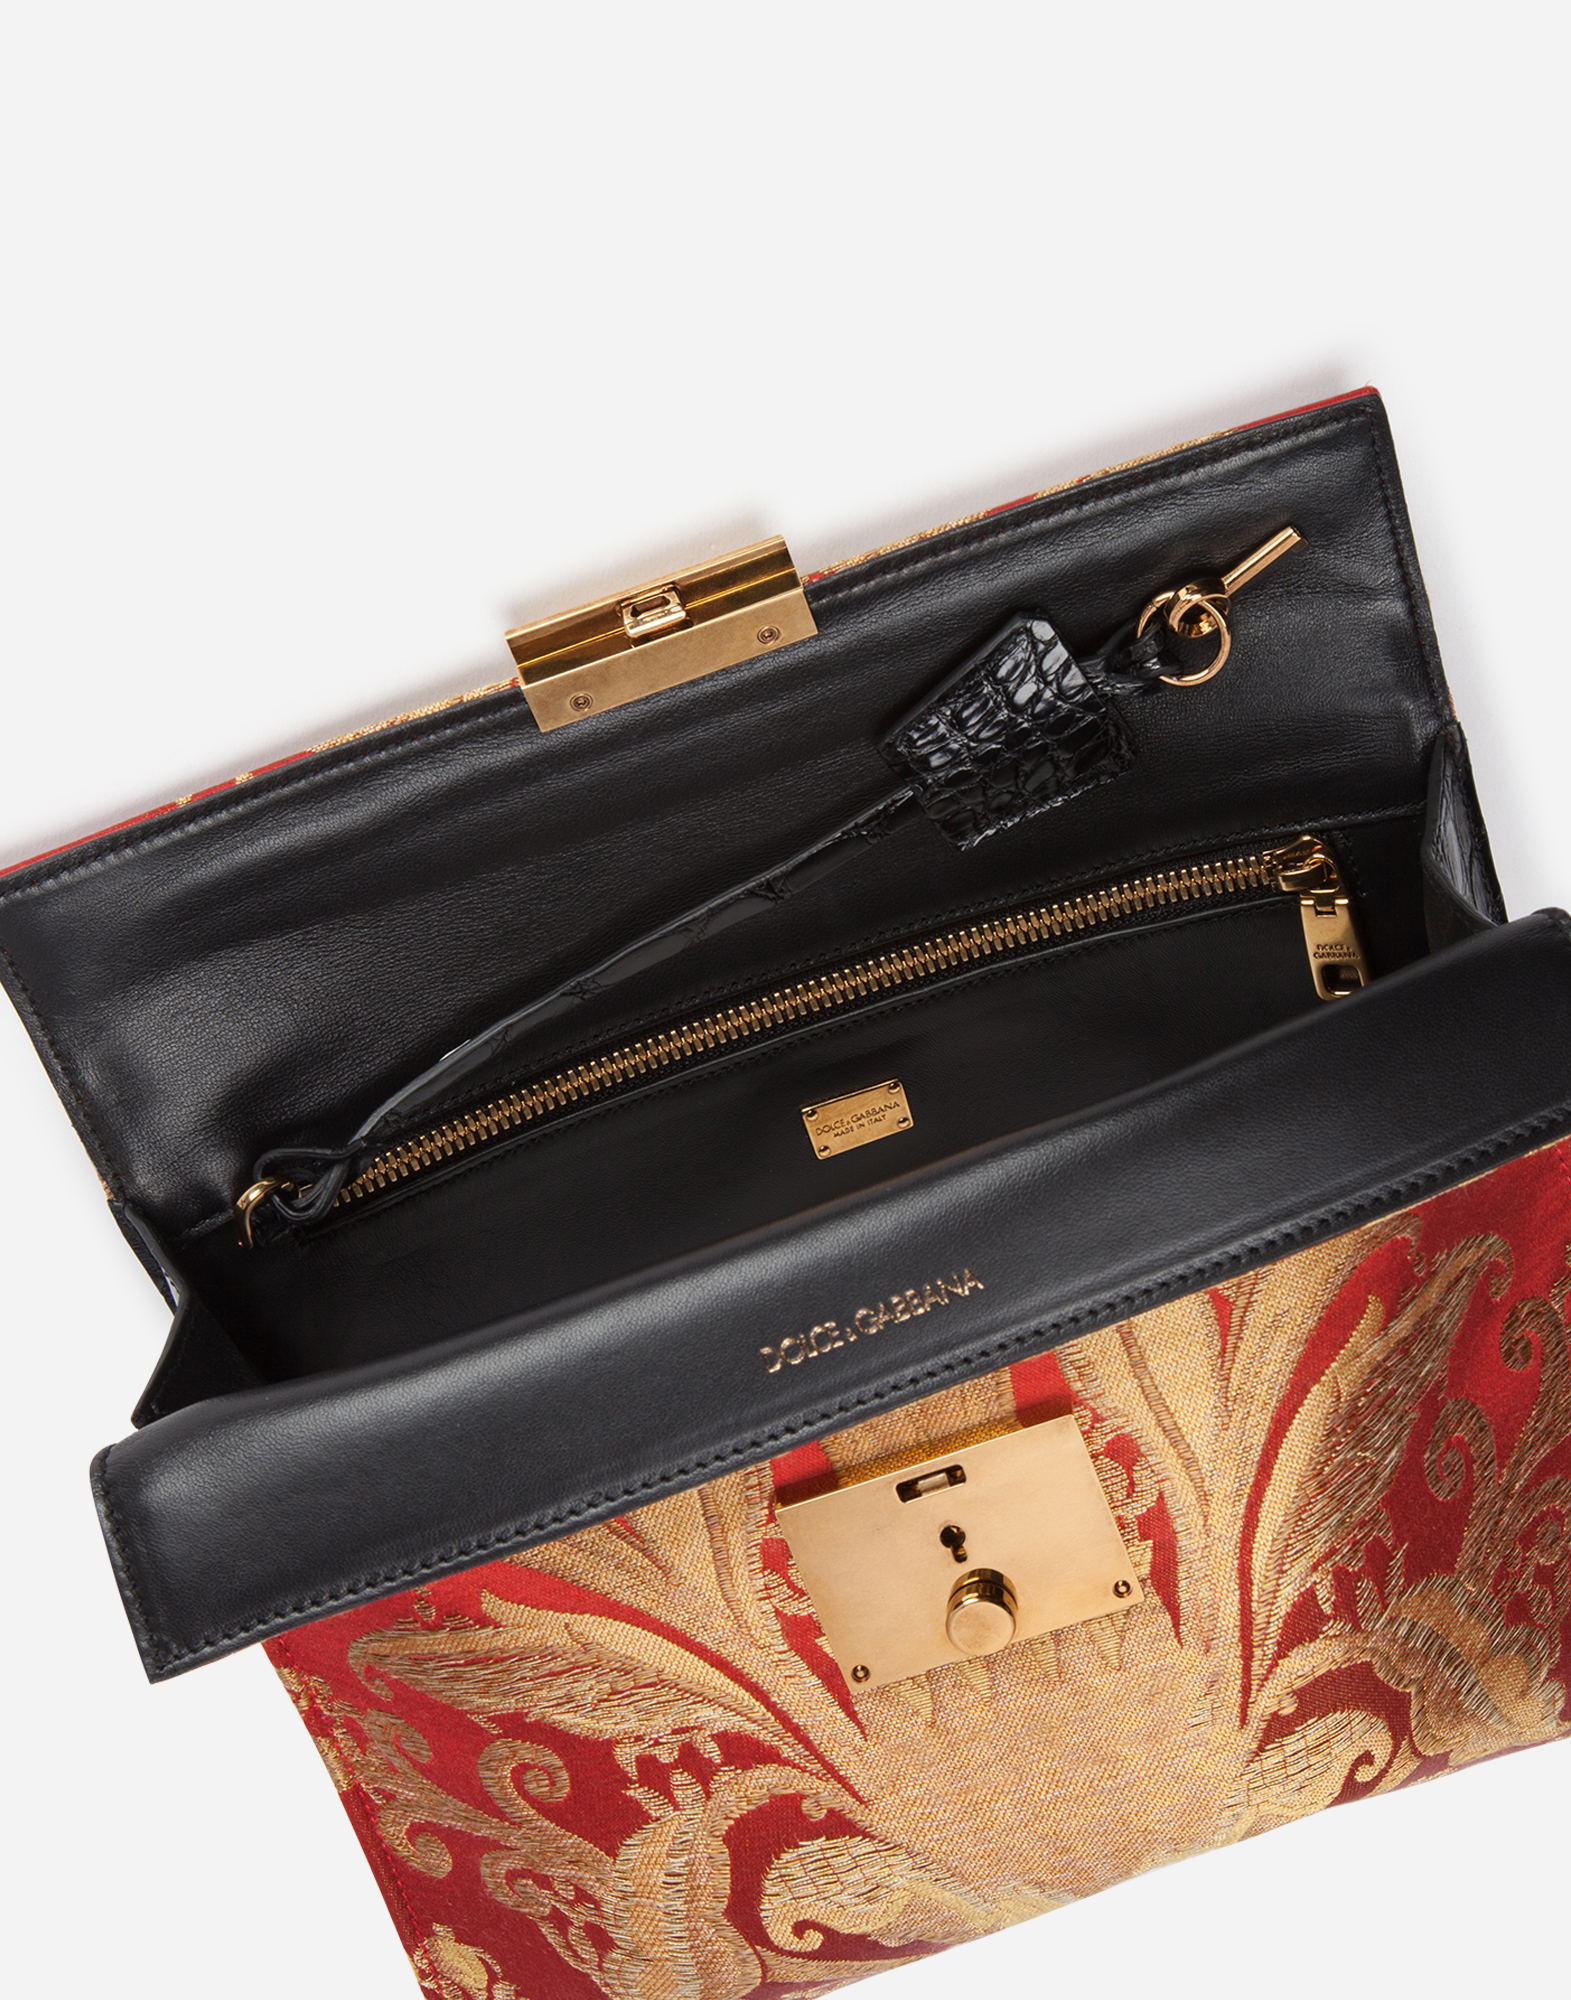 Dolce&Gabbana DOCUMENT HOLDER IN BROCADE AND CROCODILE SIDES